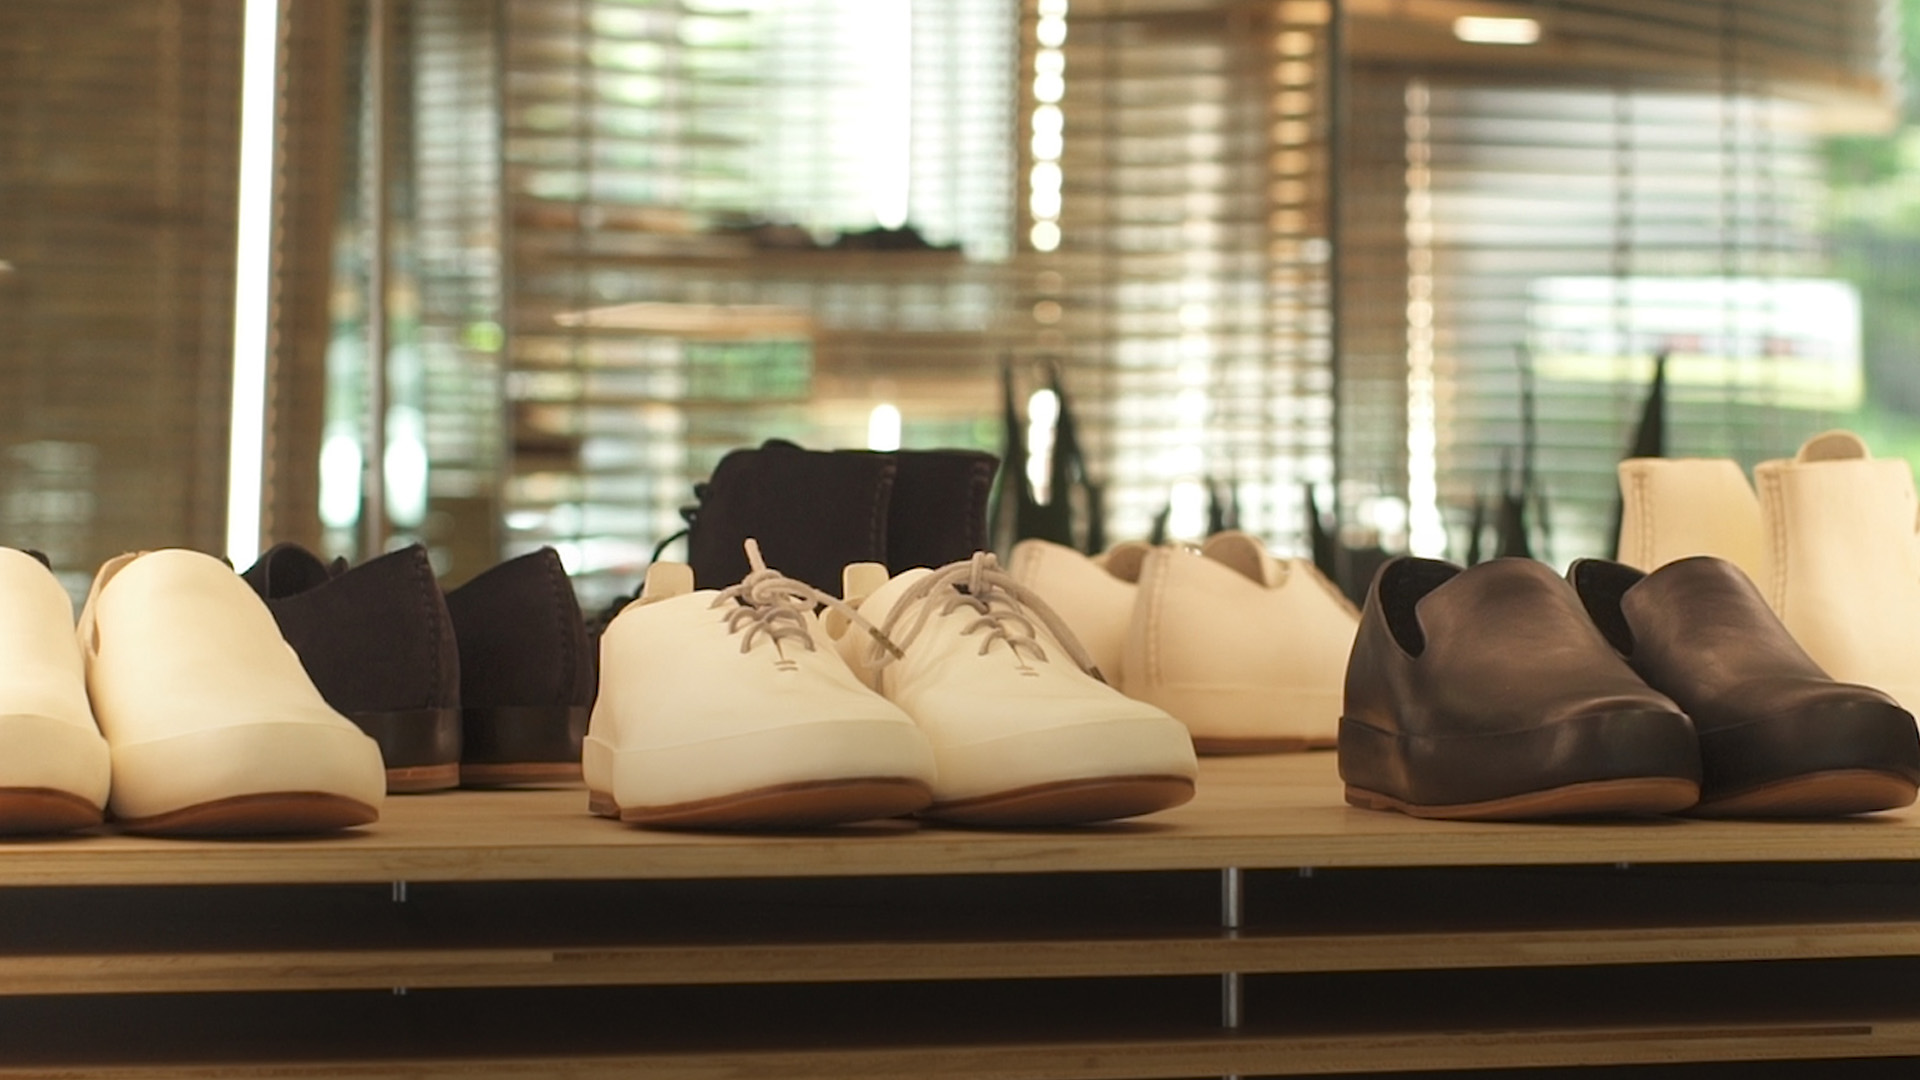 The Feit shoe store in NYC